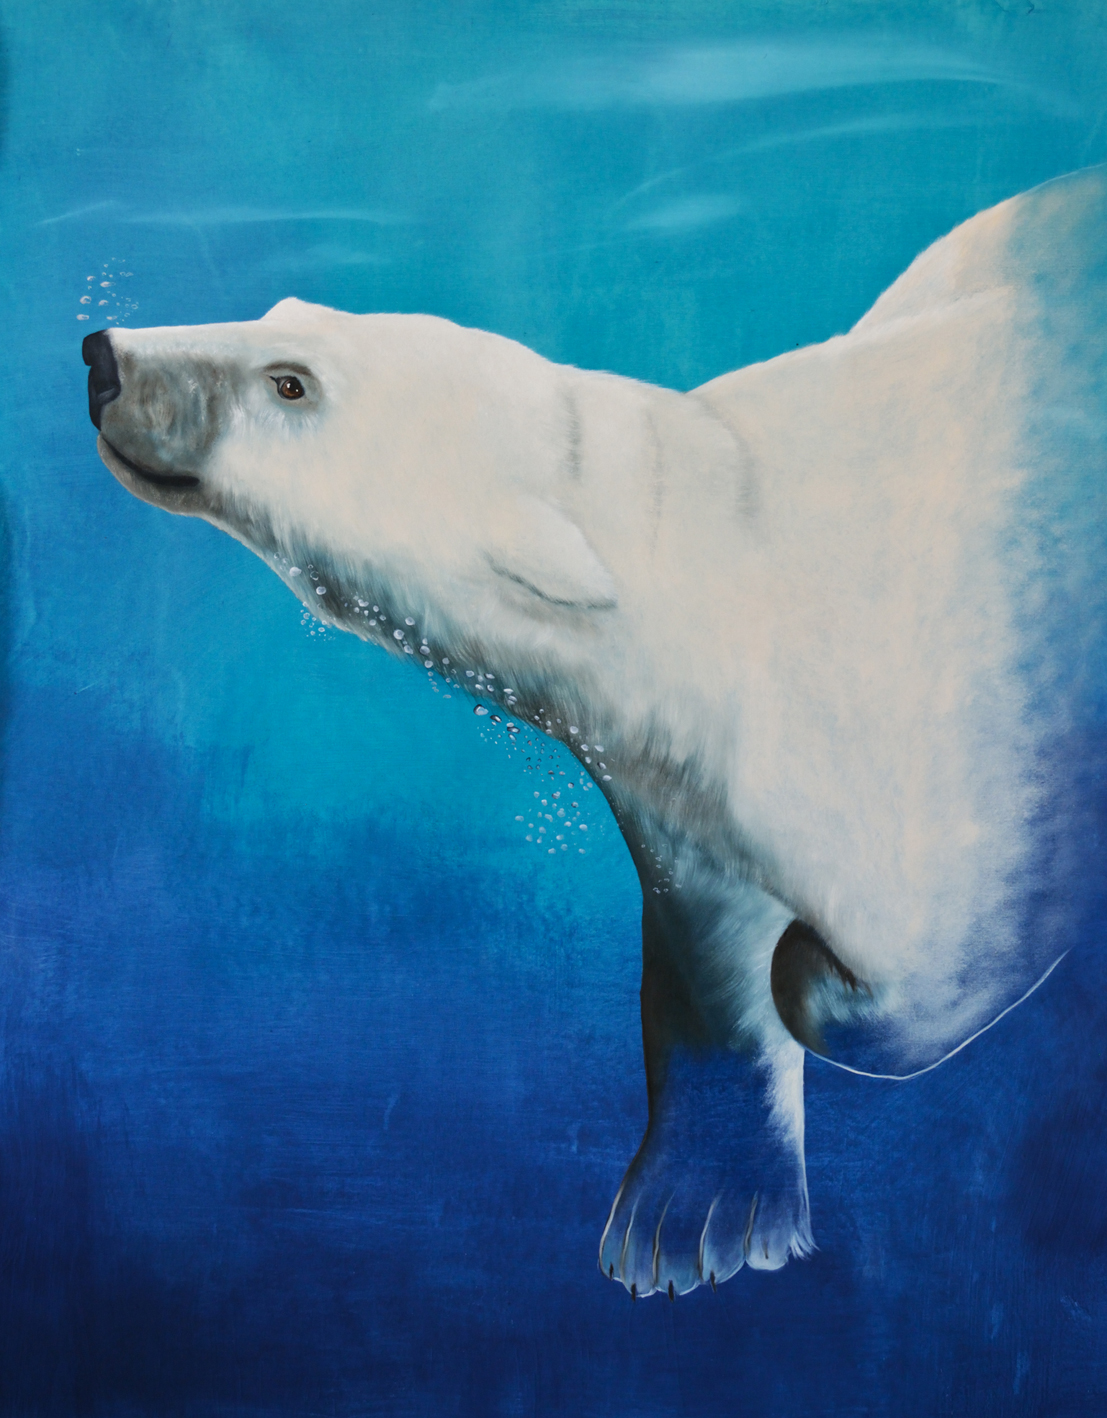 URSUS-MARITIMUS--4 Polar-bear-white-bear-swiming-bear-ursus-maritimus Thierry Bisch painter animals painting art decoration hotel design interior luxury nature biodiversity conservation